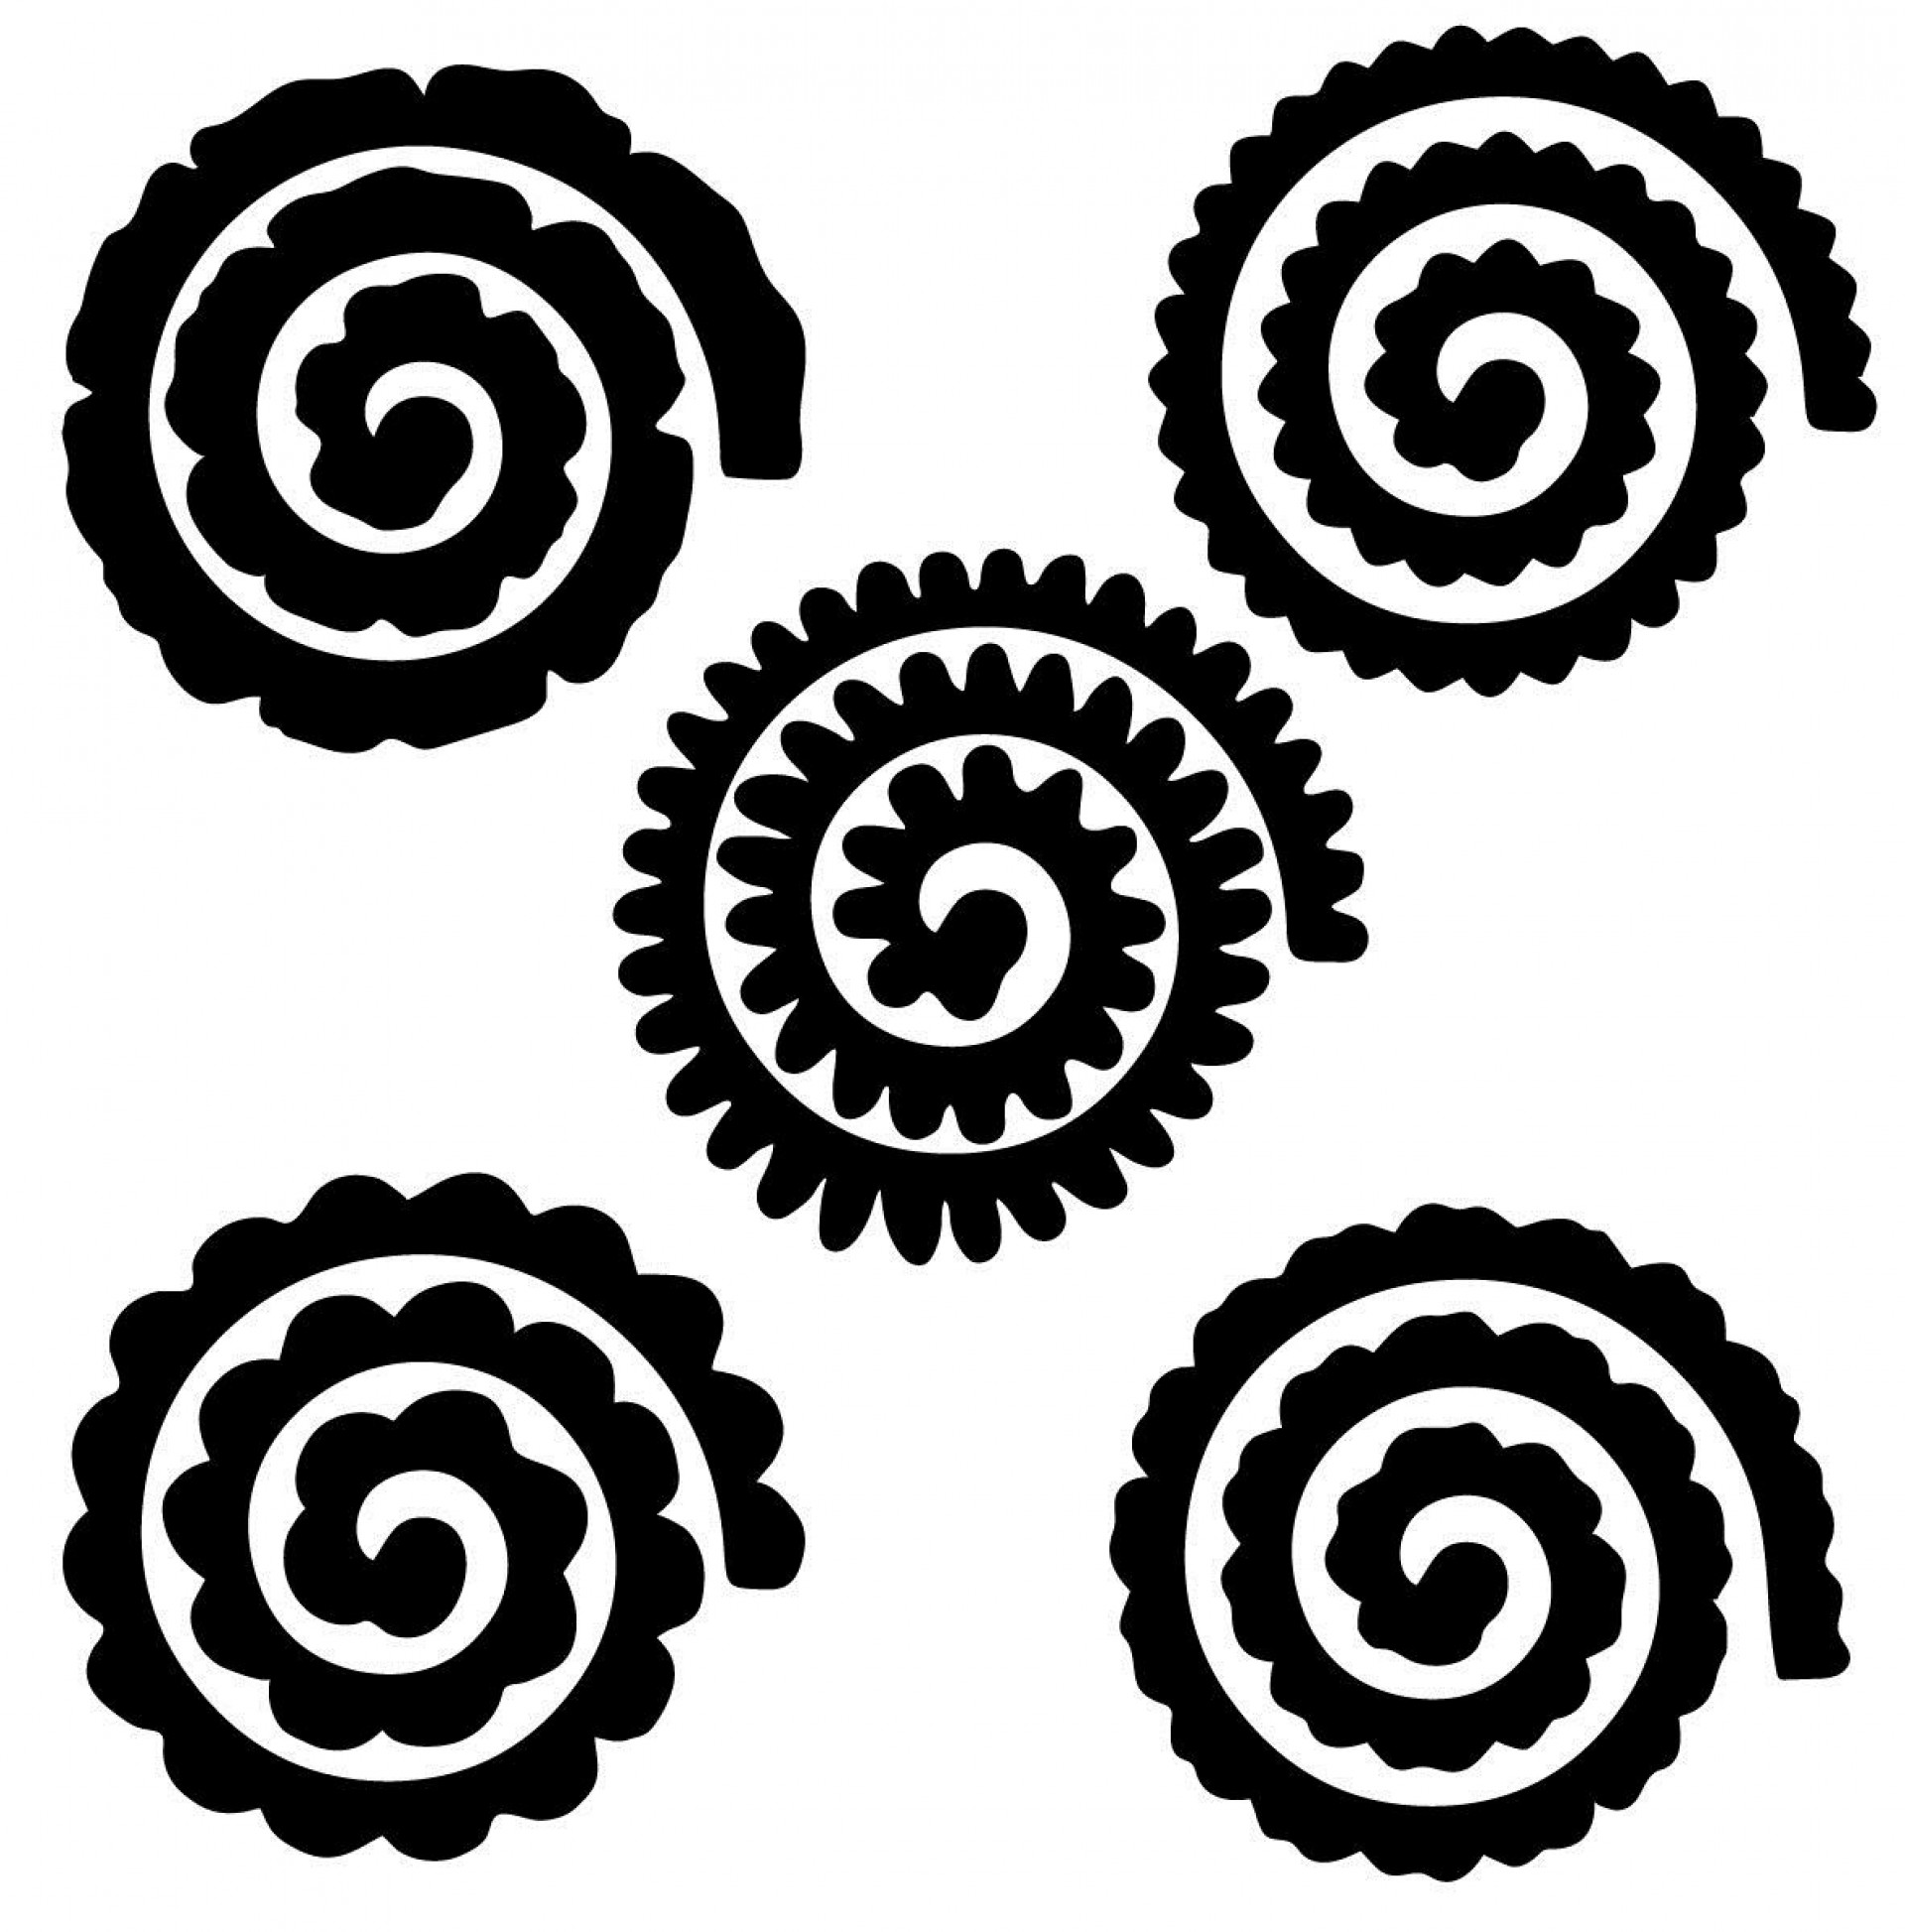 002 Remarkable Free Rolled Paper Flower Template For Cricut Inspiration 1920